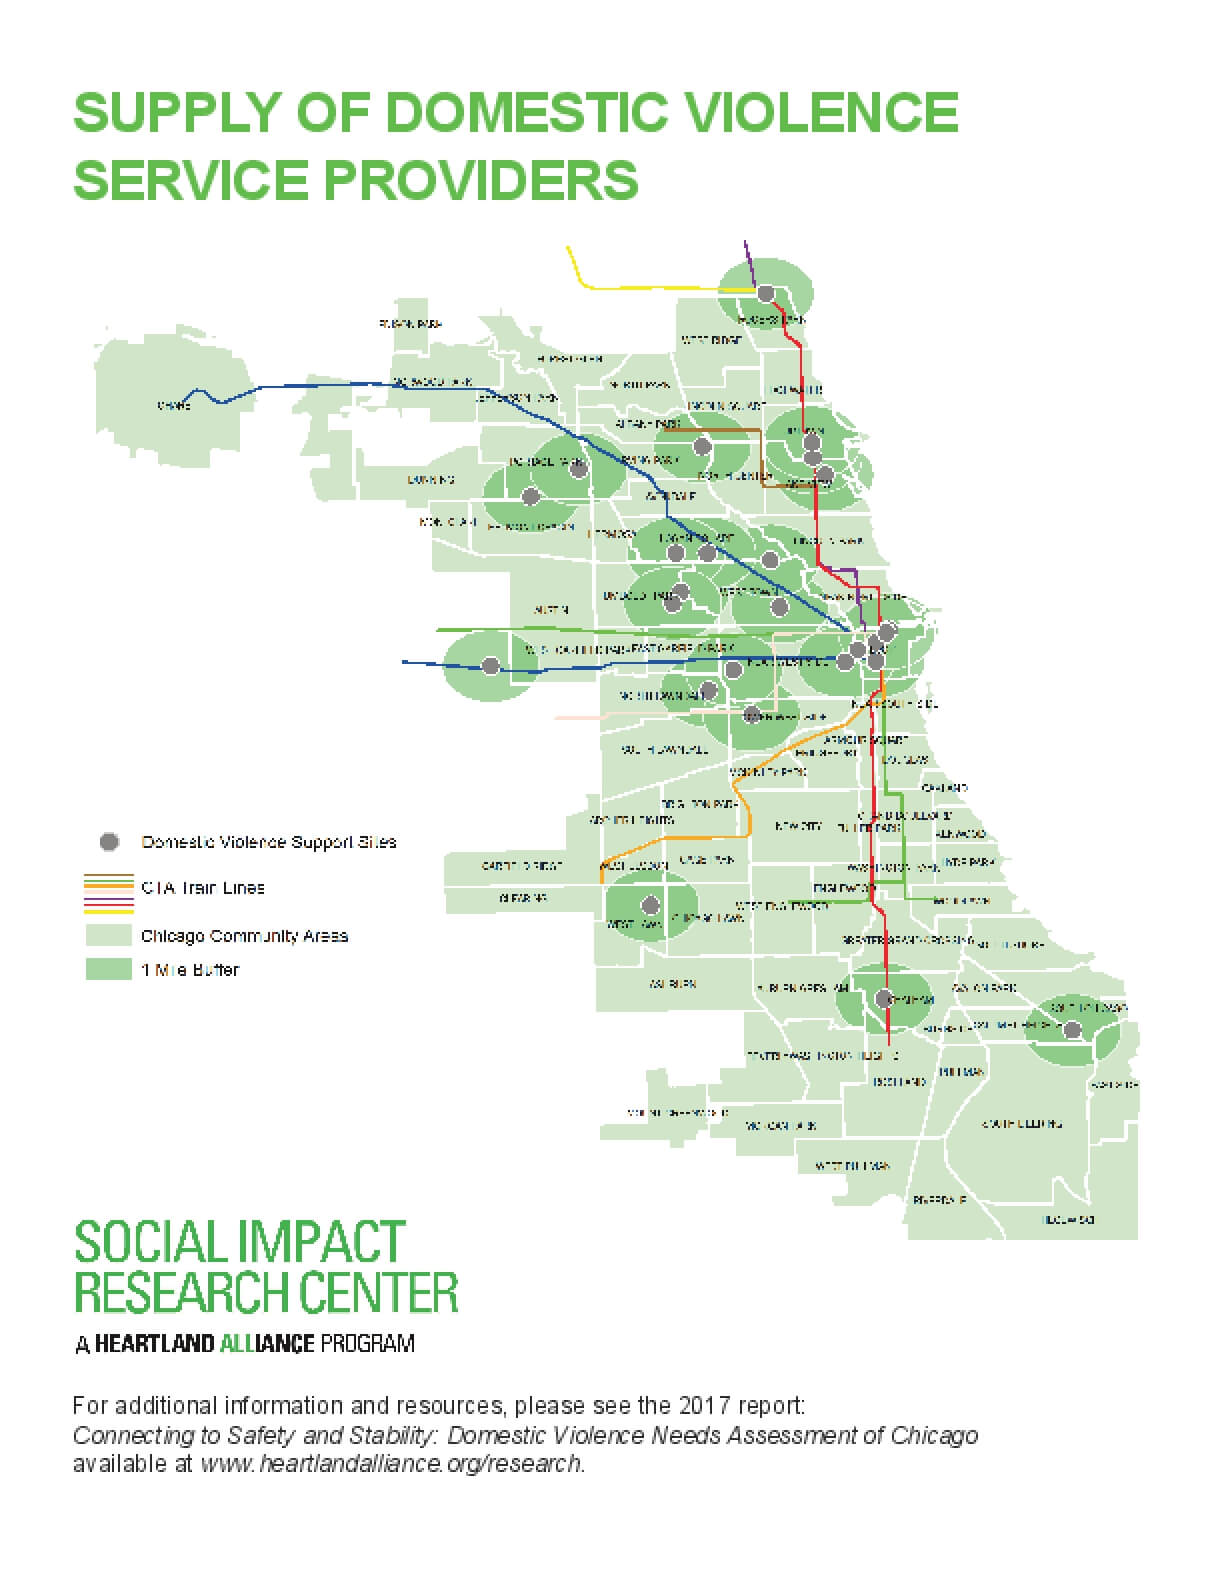 Map: Supply of Services with Relevant Demographics (DV Landscape Report)